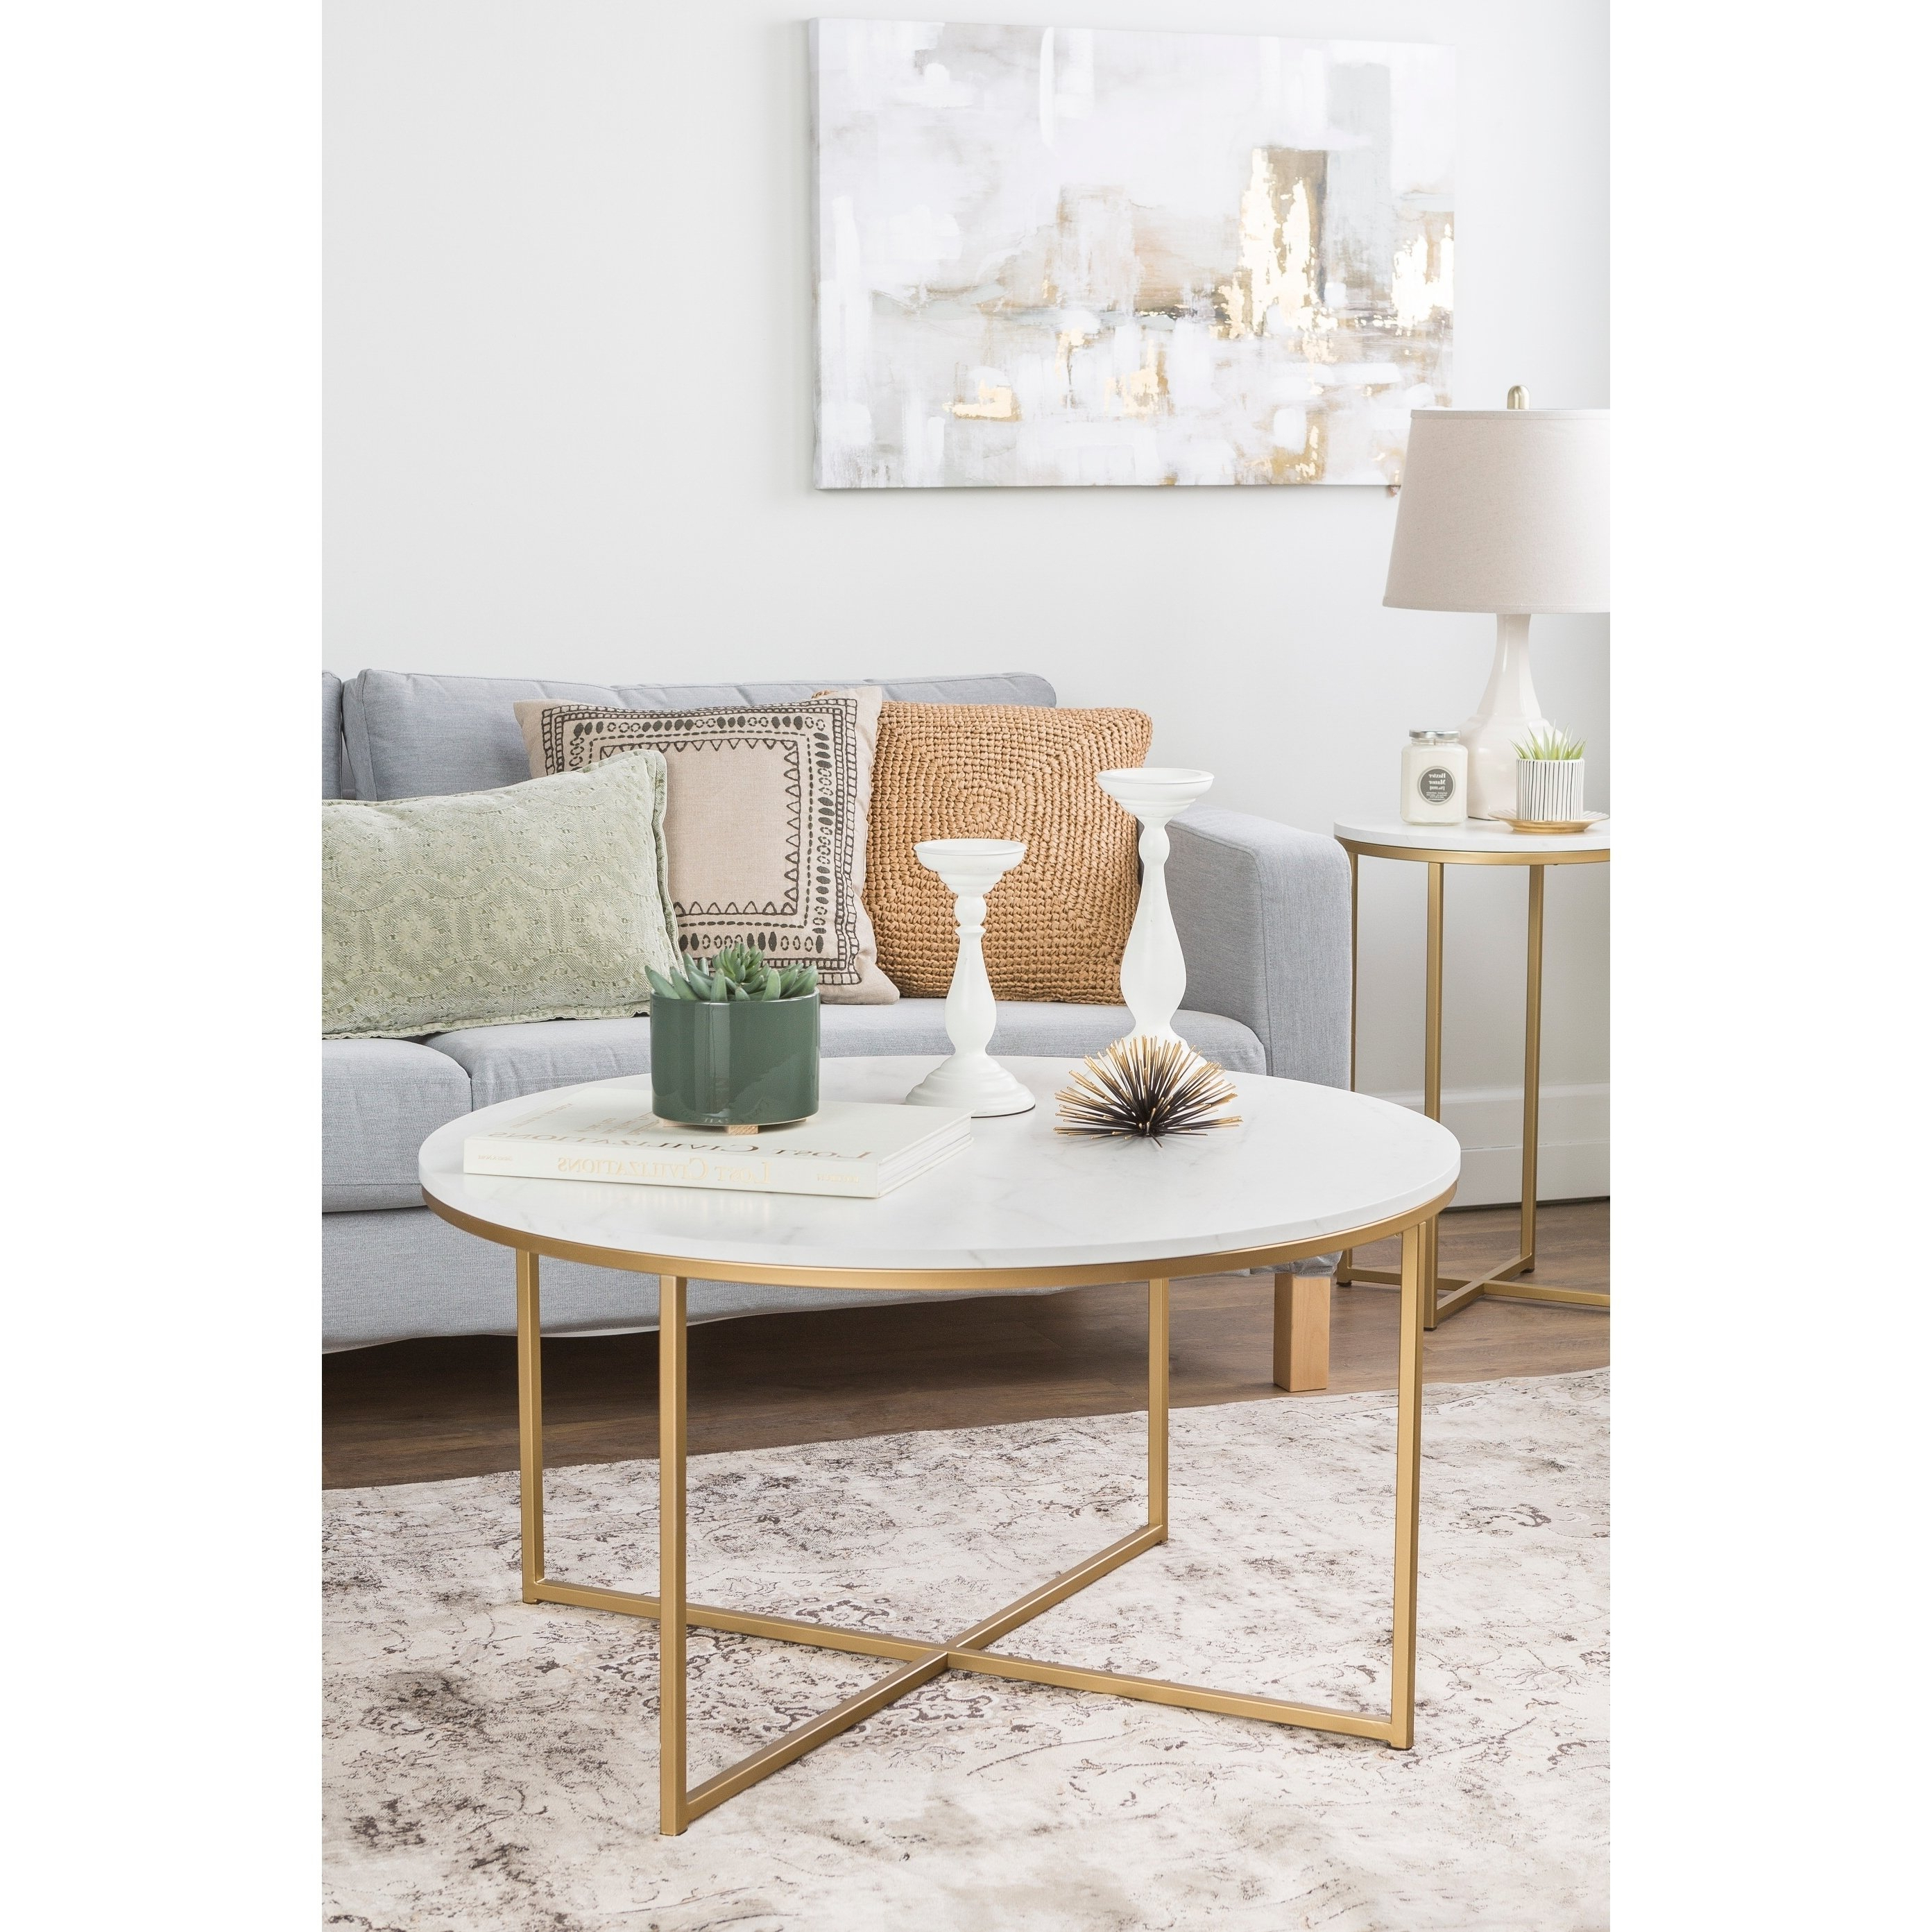 Buy White, Coffee Tables Online At Overstock (Gallery 8 of 20)